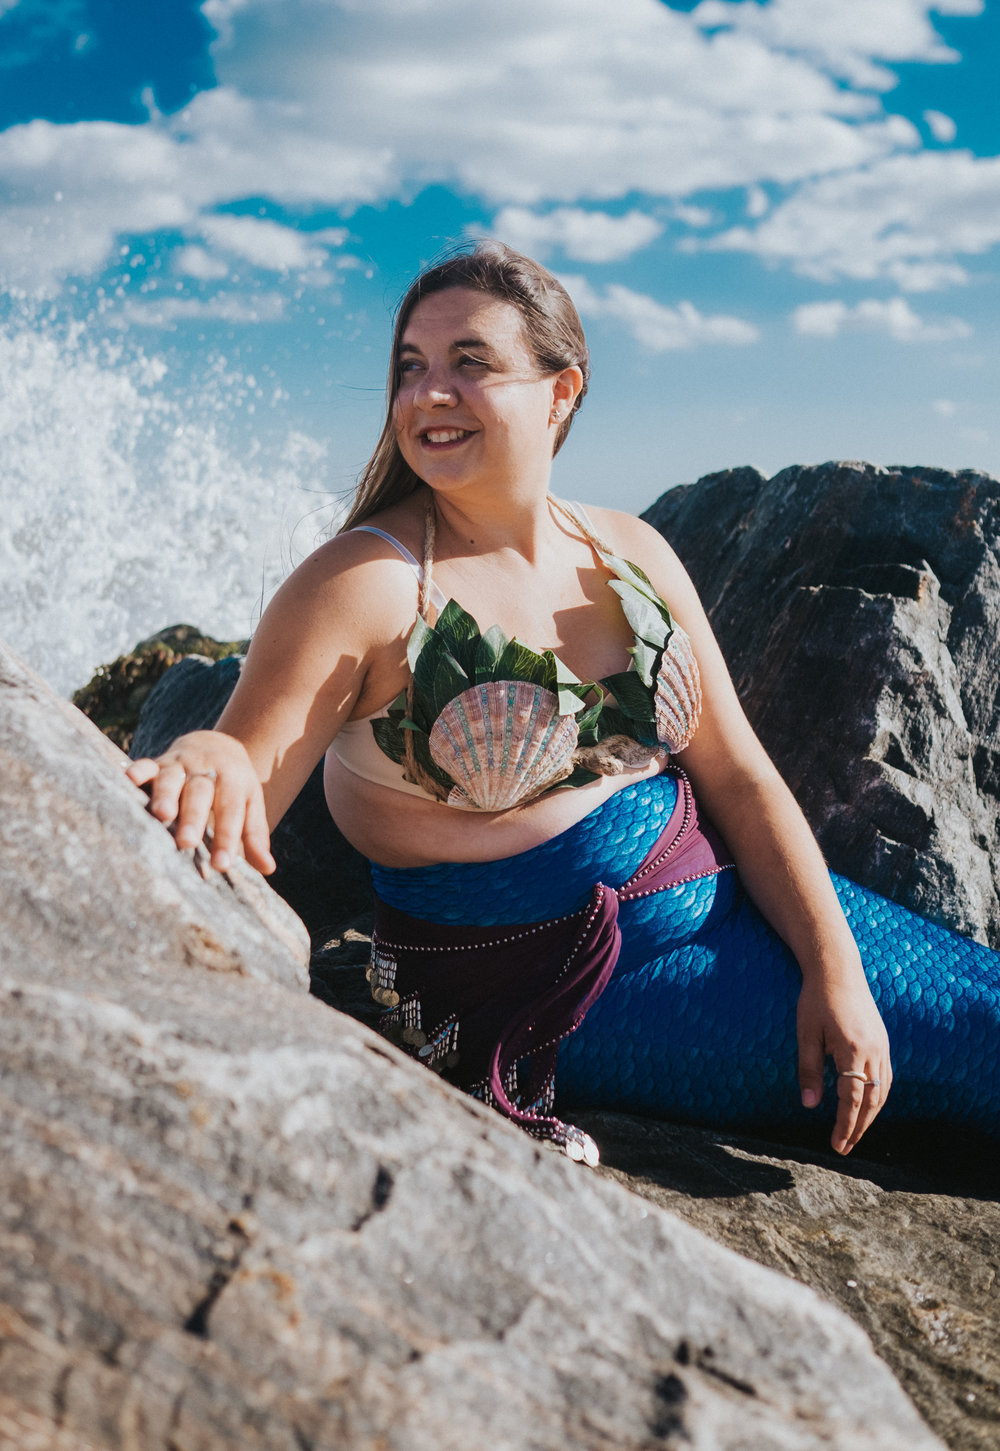 Body-Positive-Mermaids-Grace-Elizabeth-Mermaiding-UK-Alternative-Wedding-Photographer-Colchester-Essex-Suffolk-Norfolk-Devon (41 of 59).jpg